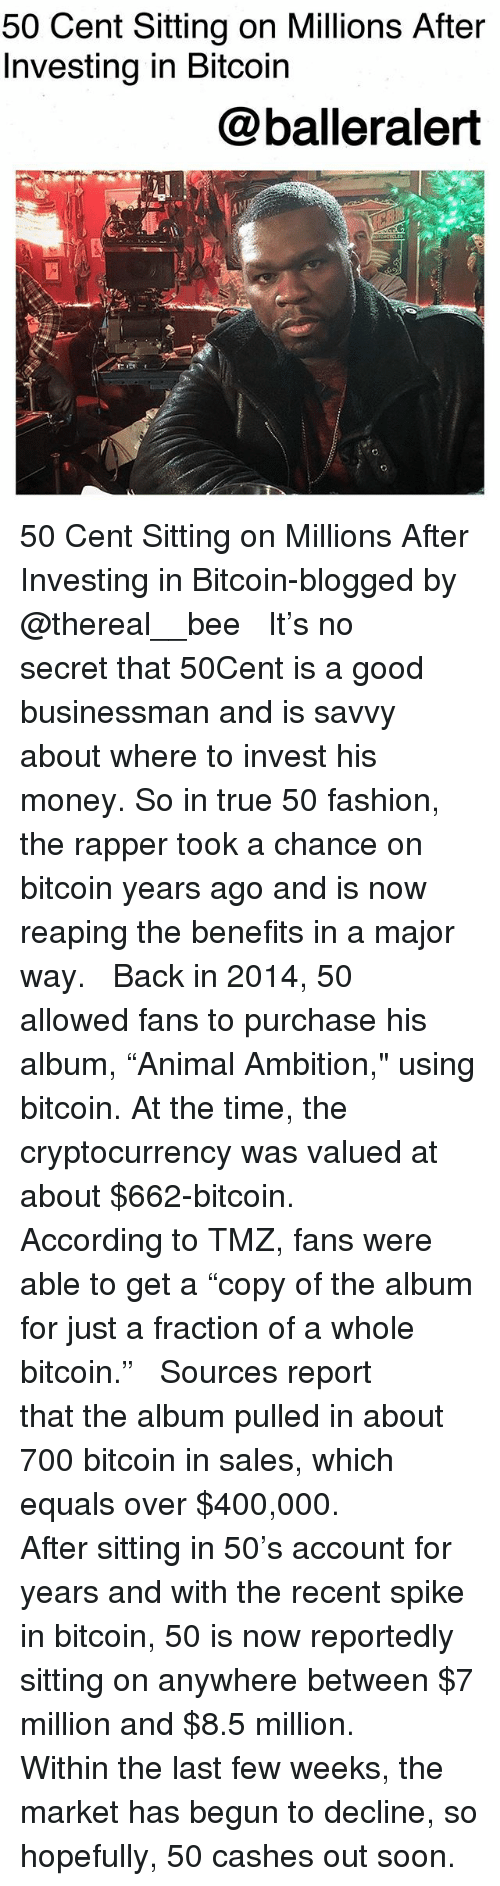 "50 Cent, Fashion, and Memes: 50 Cent Sitting on Millions After  Investing in Bitcoin  @balleralert 50 Cent Sitting on Millions After Investing in Bitcoin-blogged by @thereal__bee ⠀⠀⠀⠀⠀⠀⠀ ⠀⠀⠀⠀ It's no secret that 50Cent is a good businessman and is savvy about where to invest his money. So in true 50 fashion, the rapper took a chance on bitcoin years ago and is now reaping the benefits in a major way. ⠀⠀⠀⠀⠀⠀⠀ ⠀⠀⠀⠀ Back in 2014, 50 allowed fans to purchase his album, ""Animal Ambition,"" using bitcoin. At the time, the cryptocurrency was valued at about $662-bitcoin. ⠀⠀⠀⠀⠀⠀⠀ ⠀⠀⠀⠀ According to TMZ, fans were able to get a ""copy of the album for just a fraction of a whole bitcoin."" ⠀⠀⠀⠀⠀⠀⠀ ⠀⠀⠀⠀ Sources report that the album pulled in about 700 bitcoin in sales, which equals over $400,000. ⠀⠀⠀⠀⠀⠀⠀ ⠀⠀⠀⠀ After sitting in 50's account for years and with the recent spike in bitcoin, 50 is now reportedly sitting on anywhere between $7 million and $8.5 million. ⠀⠀⠀⠀⠀⠀⠀ ⠀⠀⠀⠀ Within the last few weeks, the market has begun to decline, so hopefully, 50 cashes out soon."